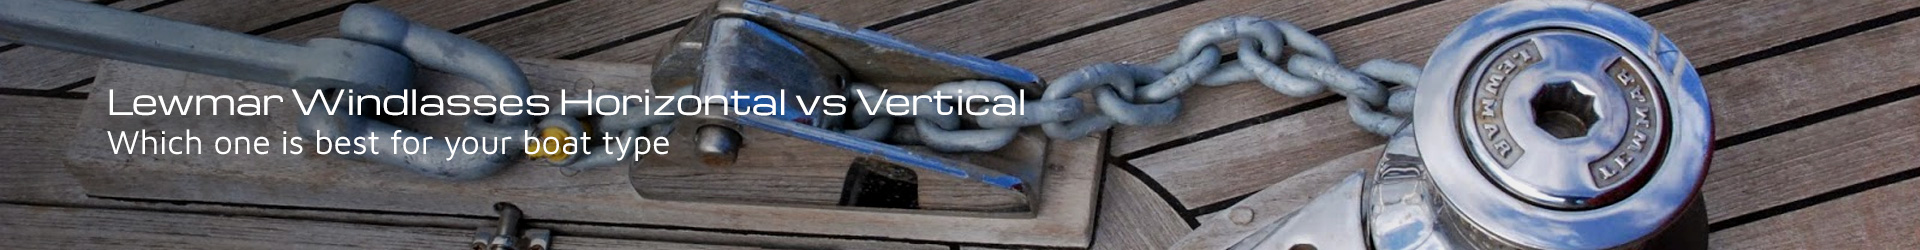 Lewmar Windlasses Horizontal vs Vertical